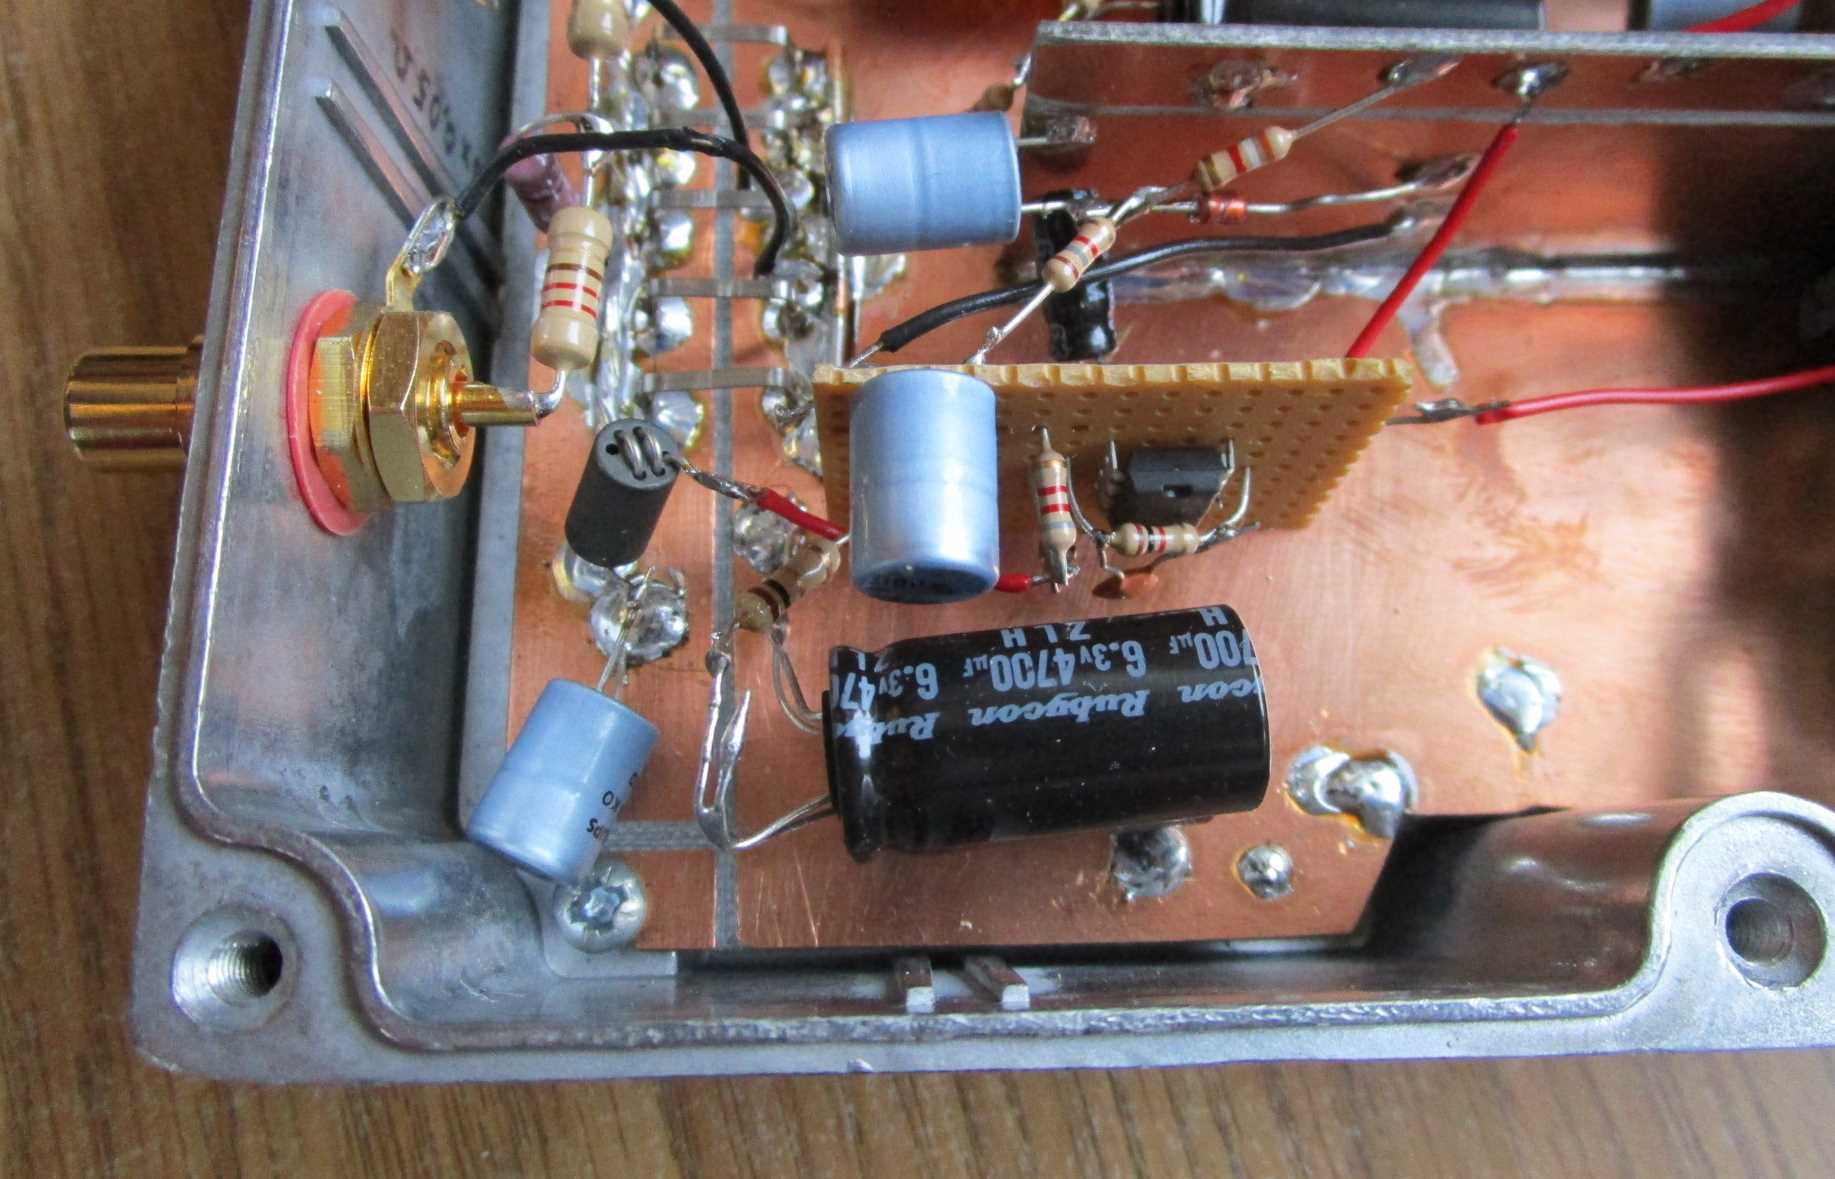 Ultra Low Noise Amplifiers Test Capacitor In Circuit My Setup This Is Prevented By Only Using Very Input Signals At 0 Volt Dc